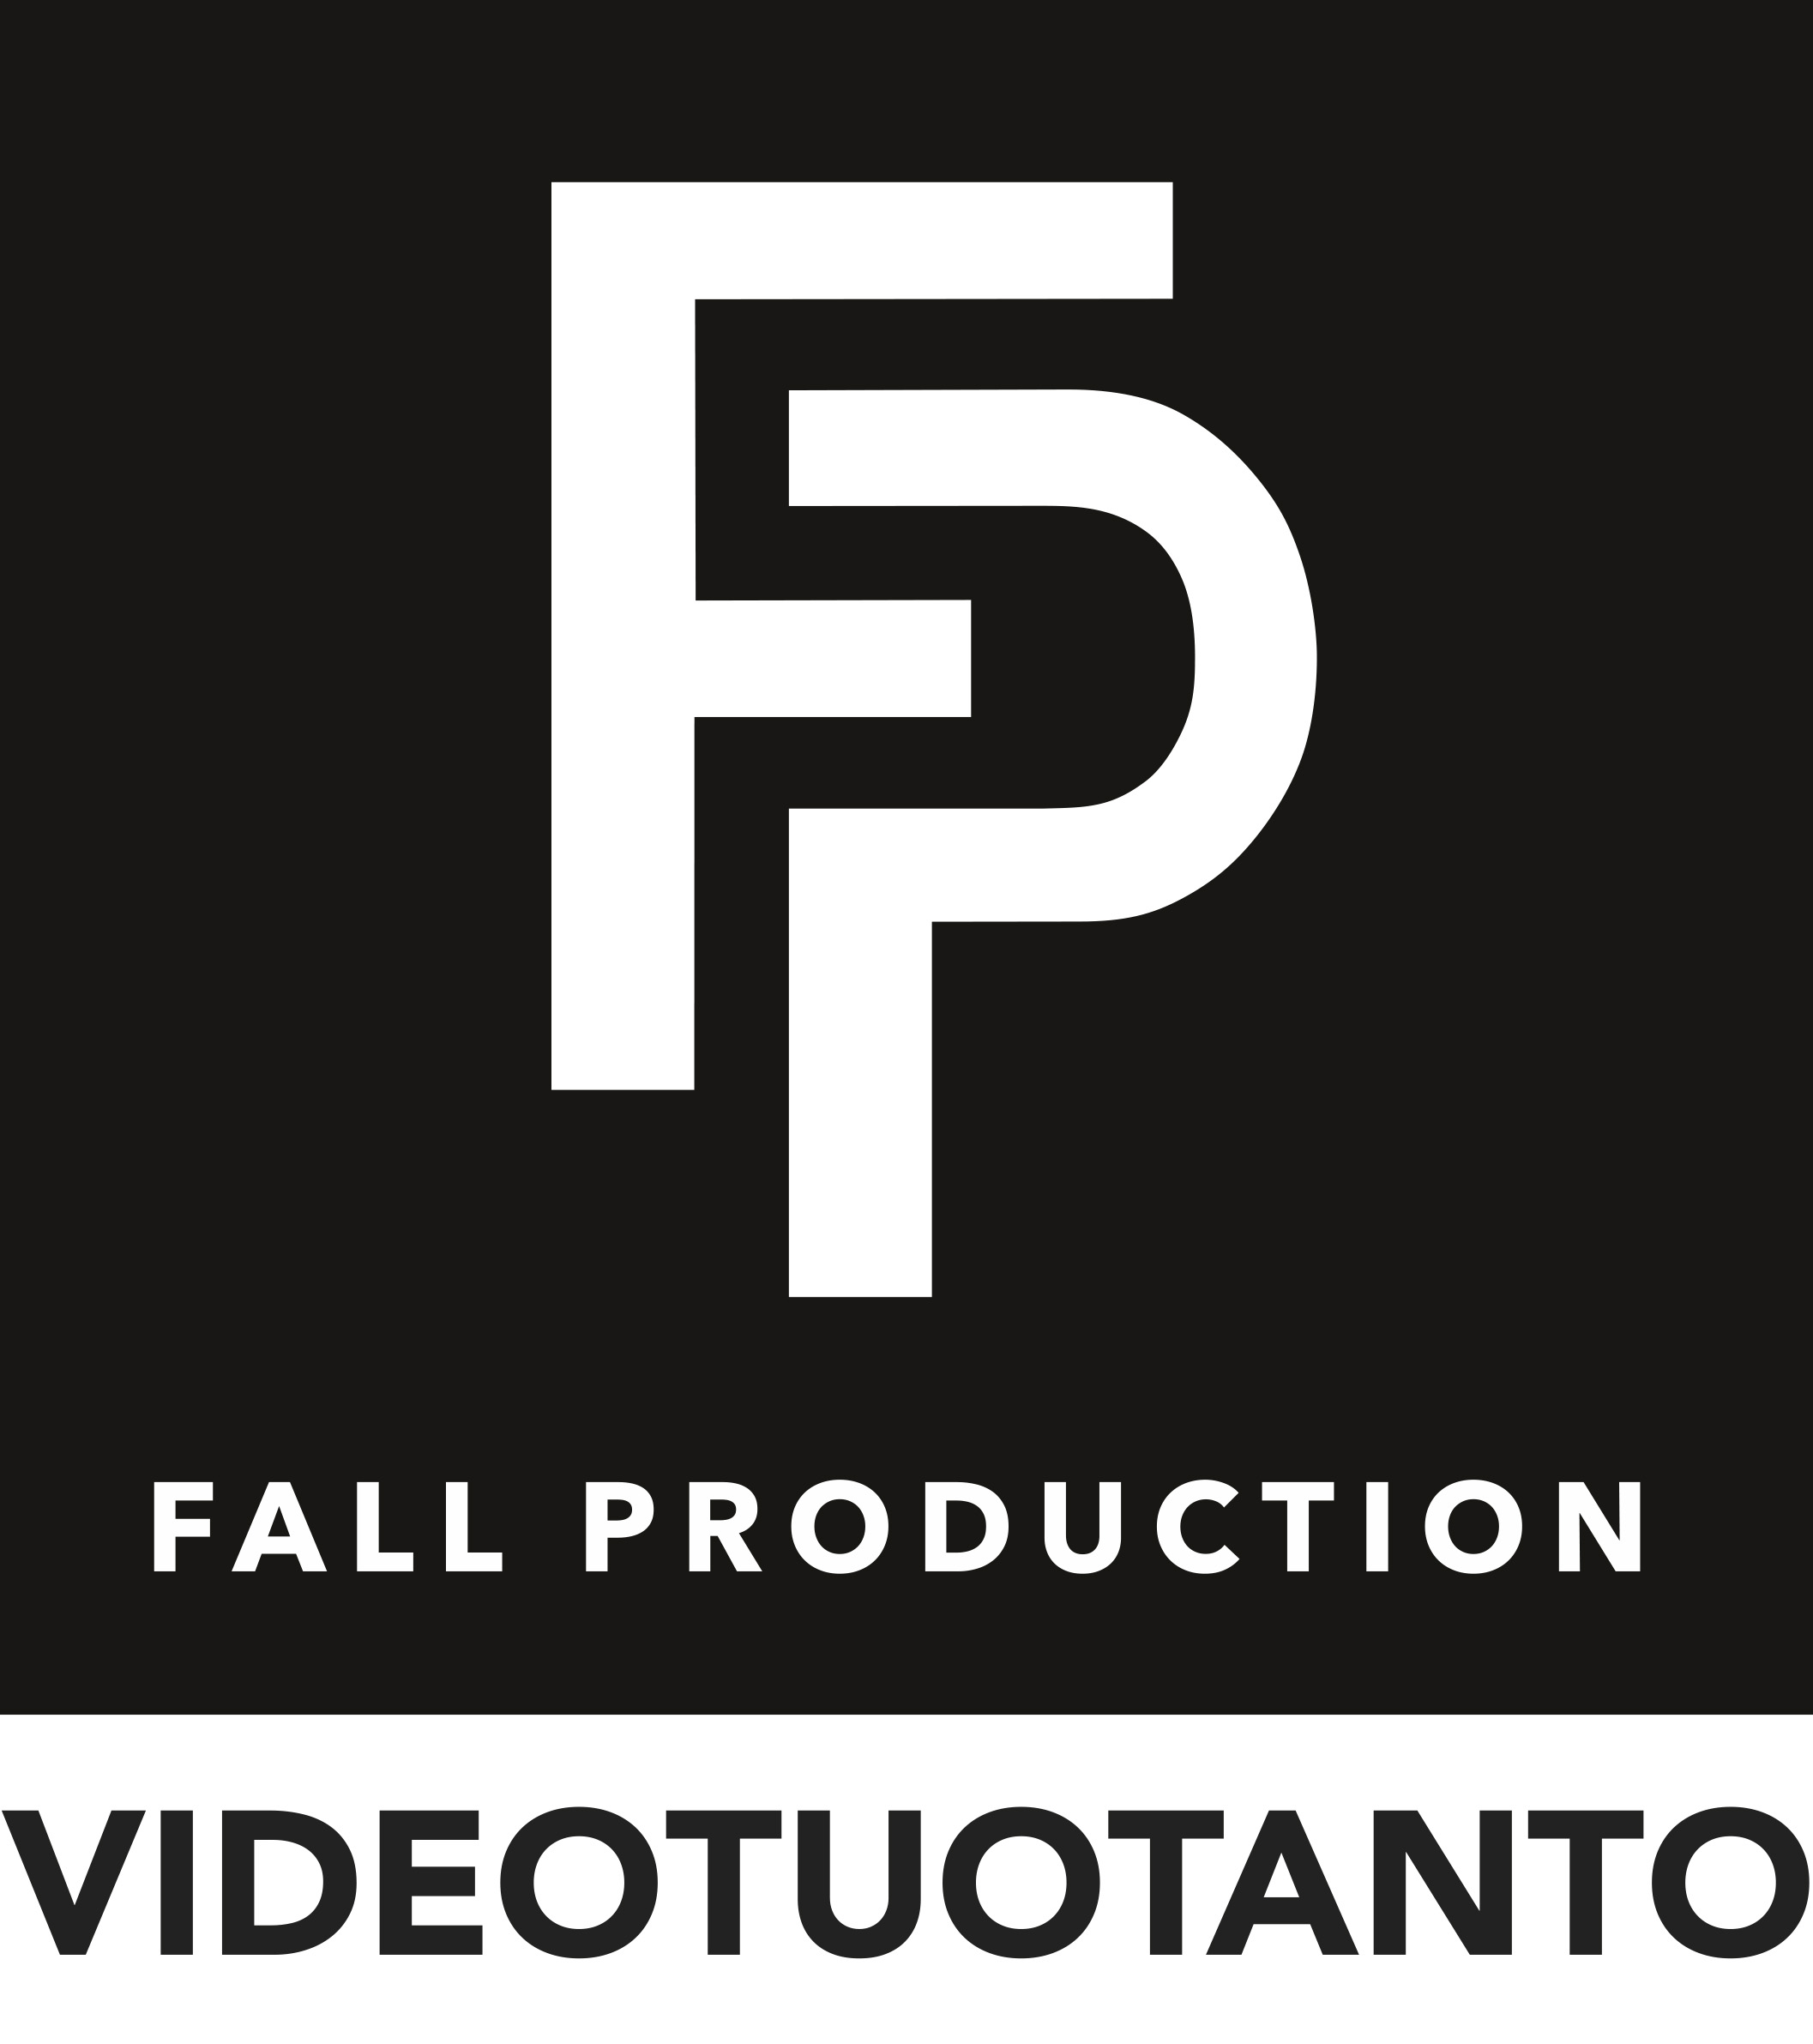 Fall Production